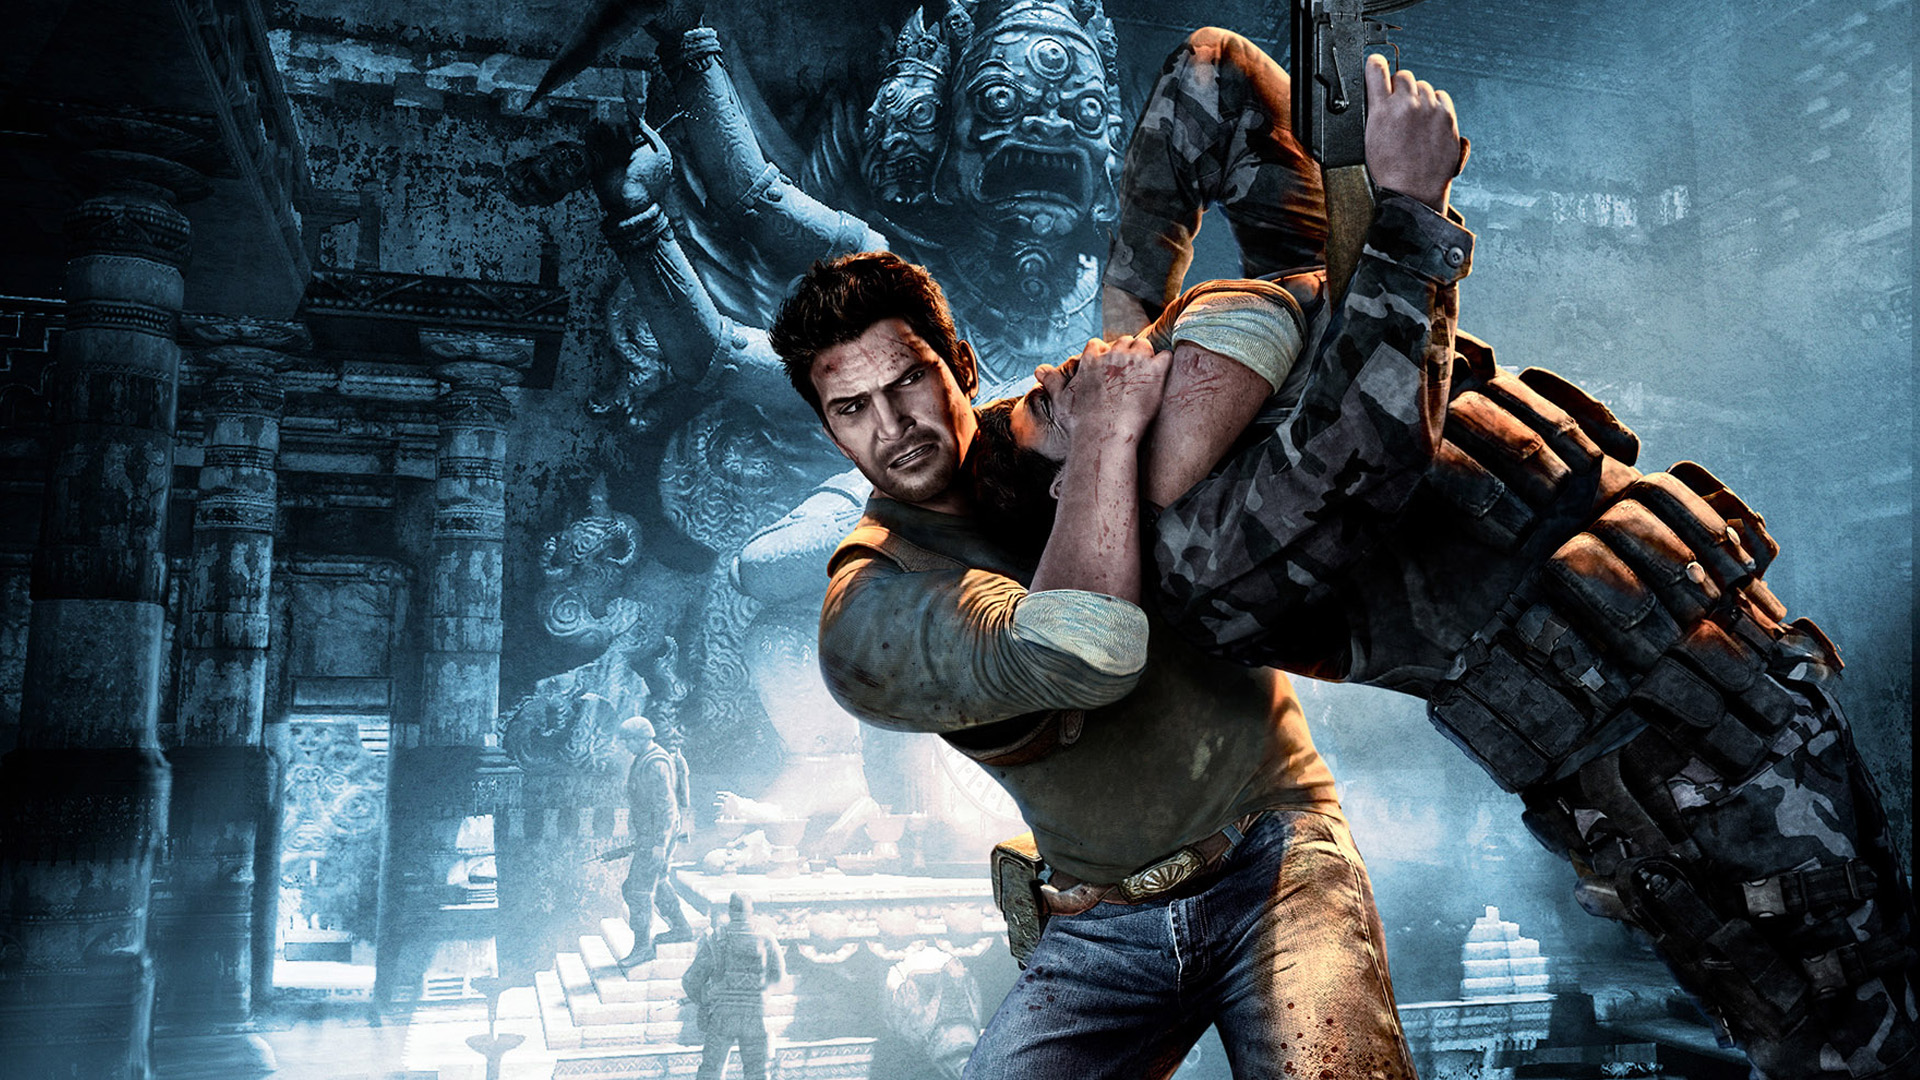 Uncharted 2 Stranglehold Wallpapers